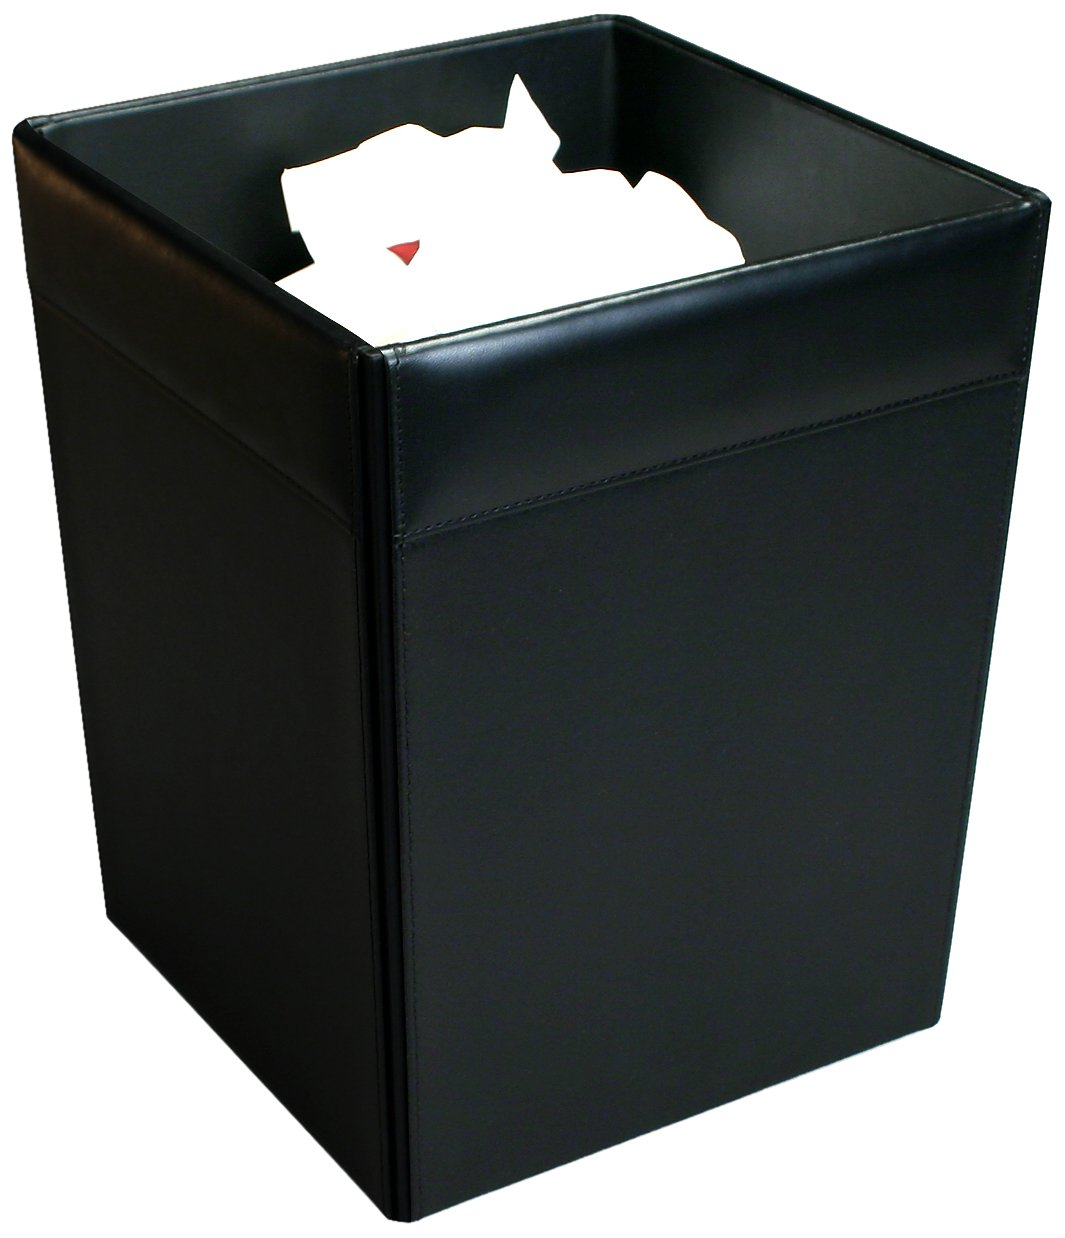 Dacasso Black Leather Waste Basket